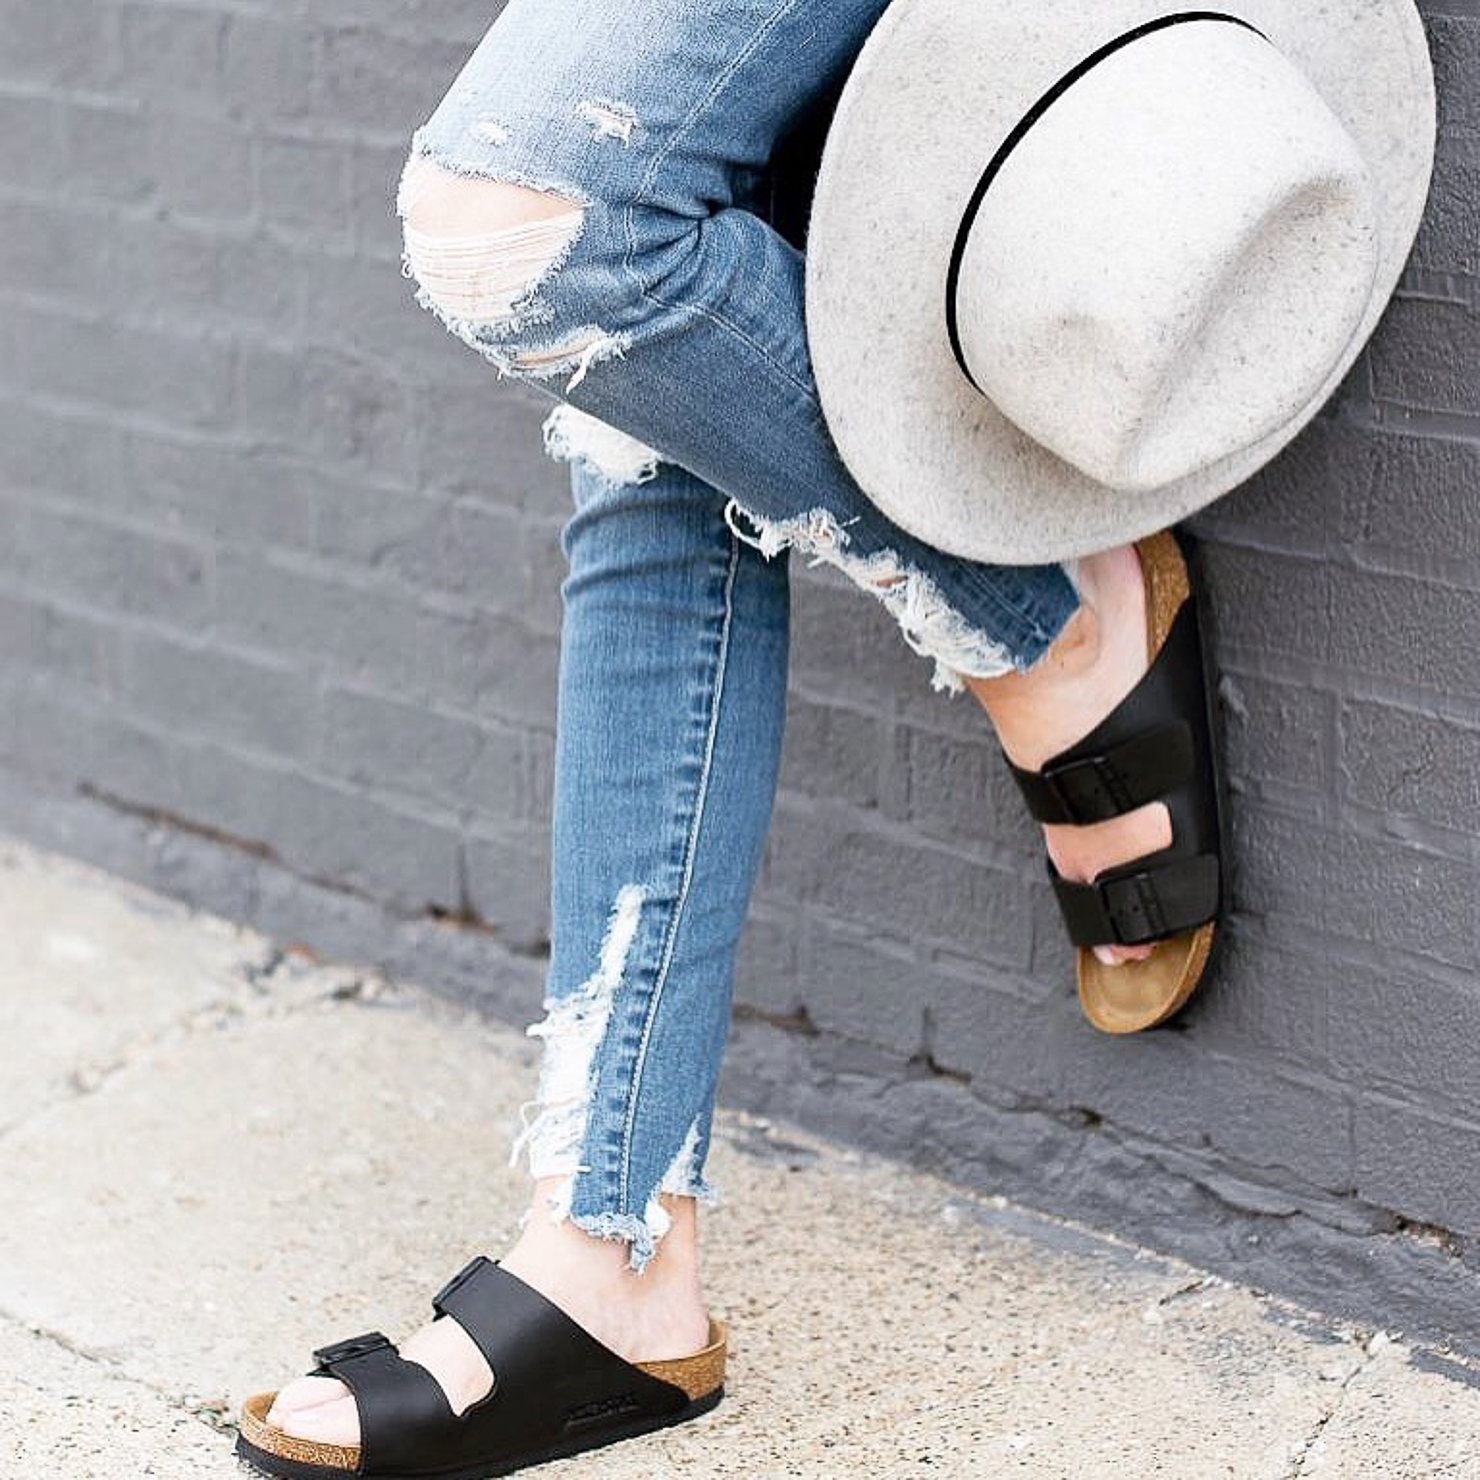 shredded-american-eagle-high-rise-skinny-jeans-birkenstocks-how-to-style-birkenstocks